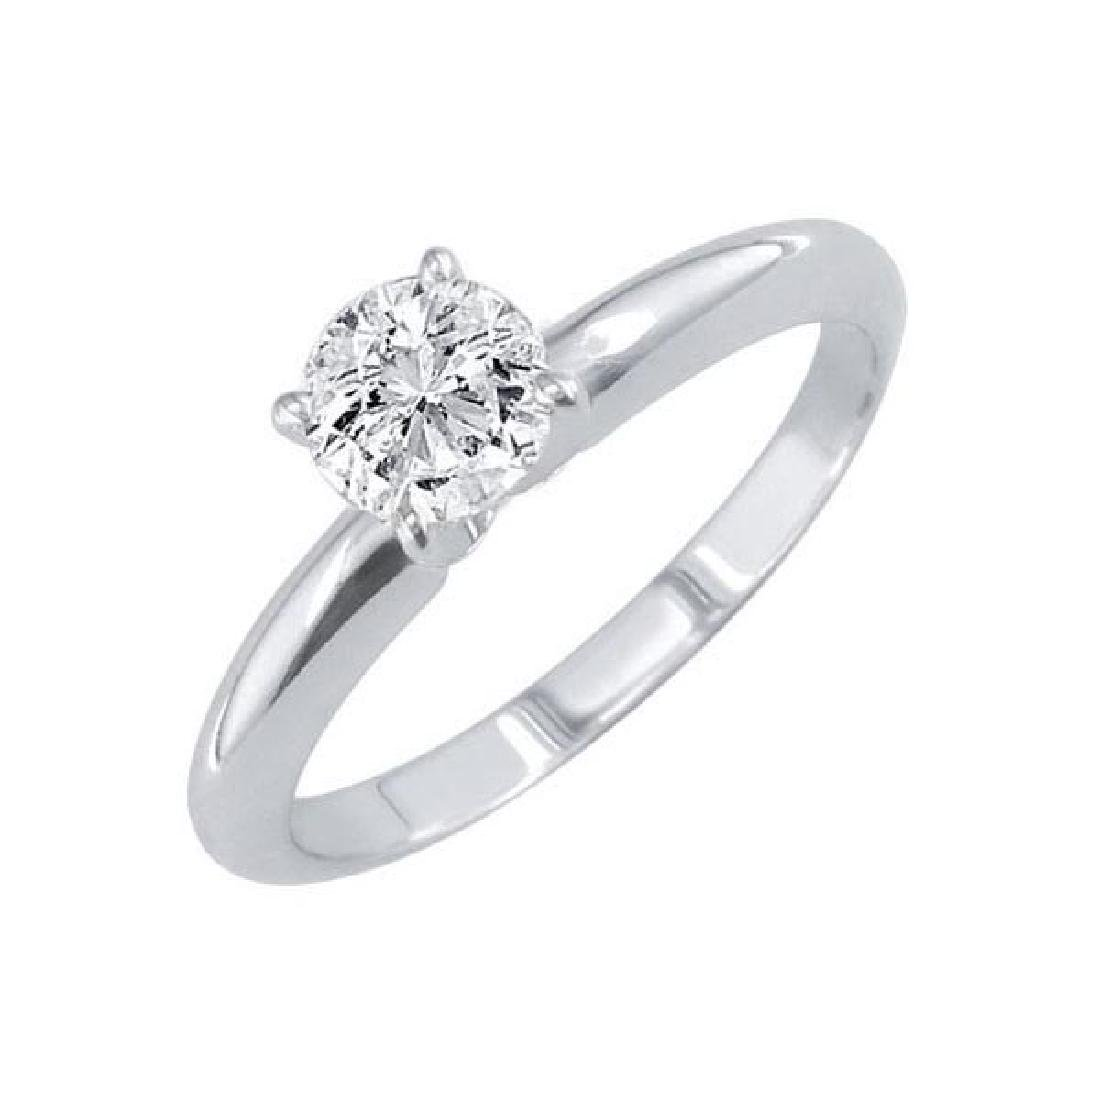 Certified 1.05 CTW Round Diamond Solitaire 14k Ring G/S